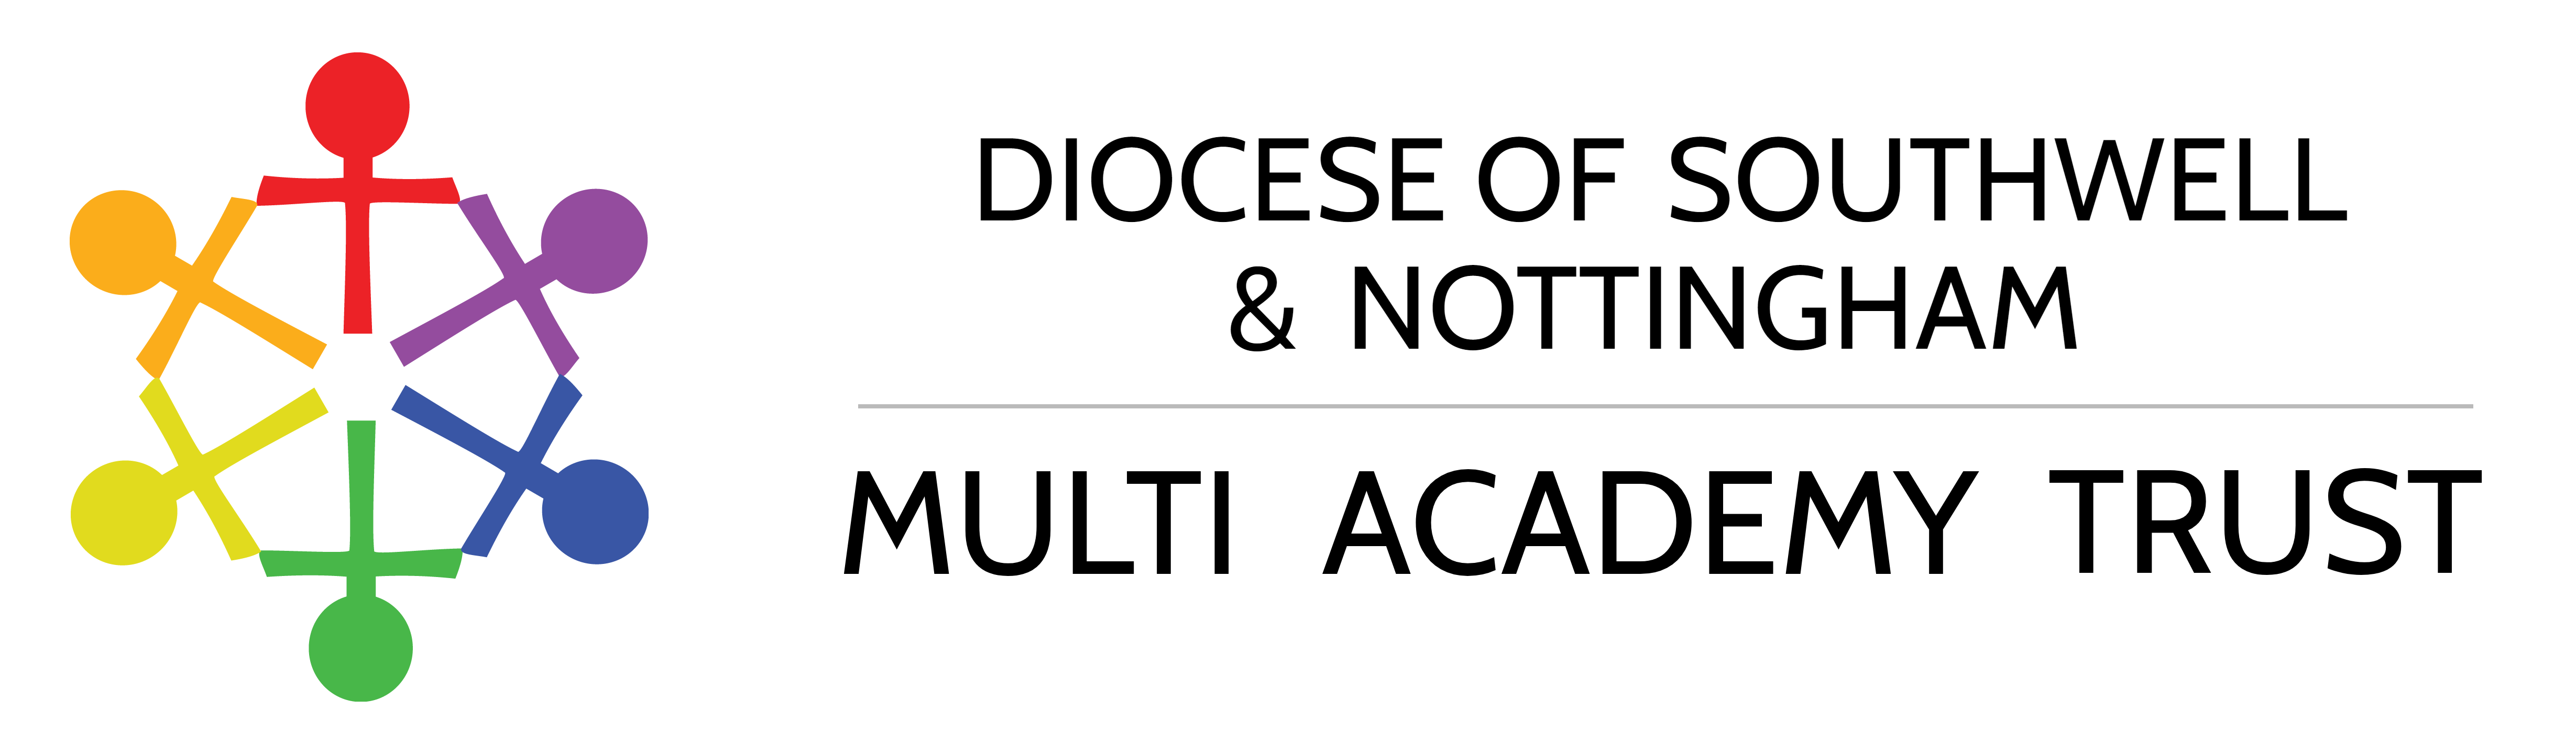 Diocese of Southwell & Nottingham MAT